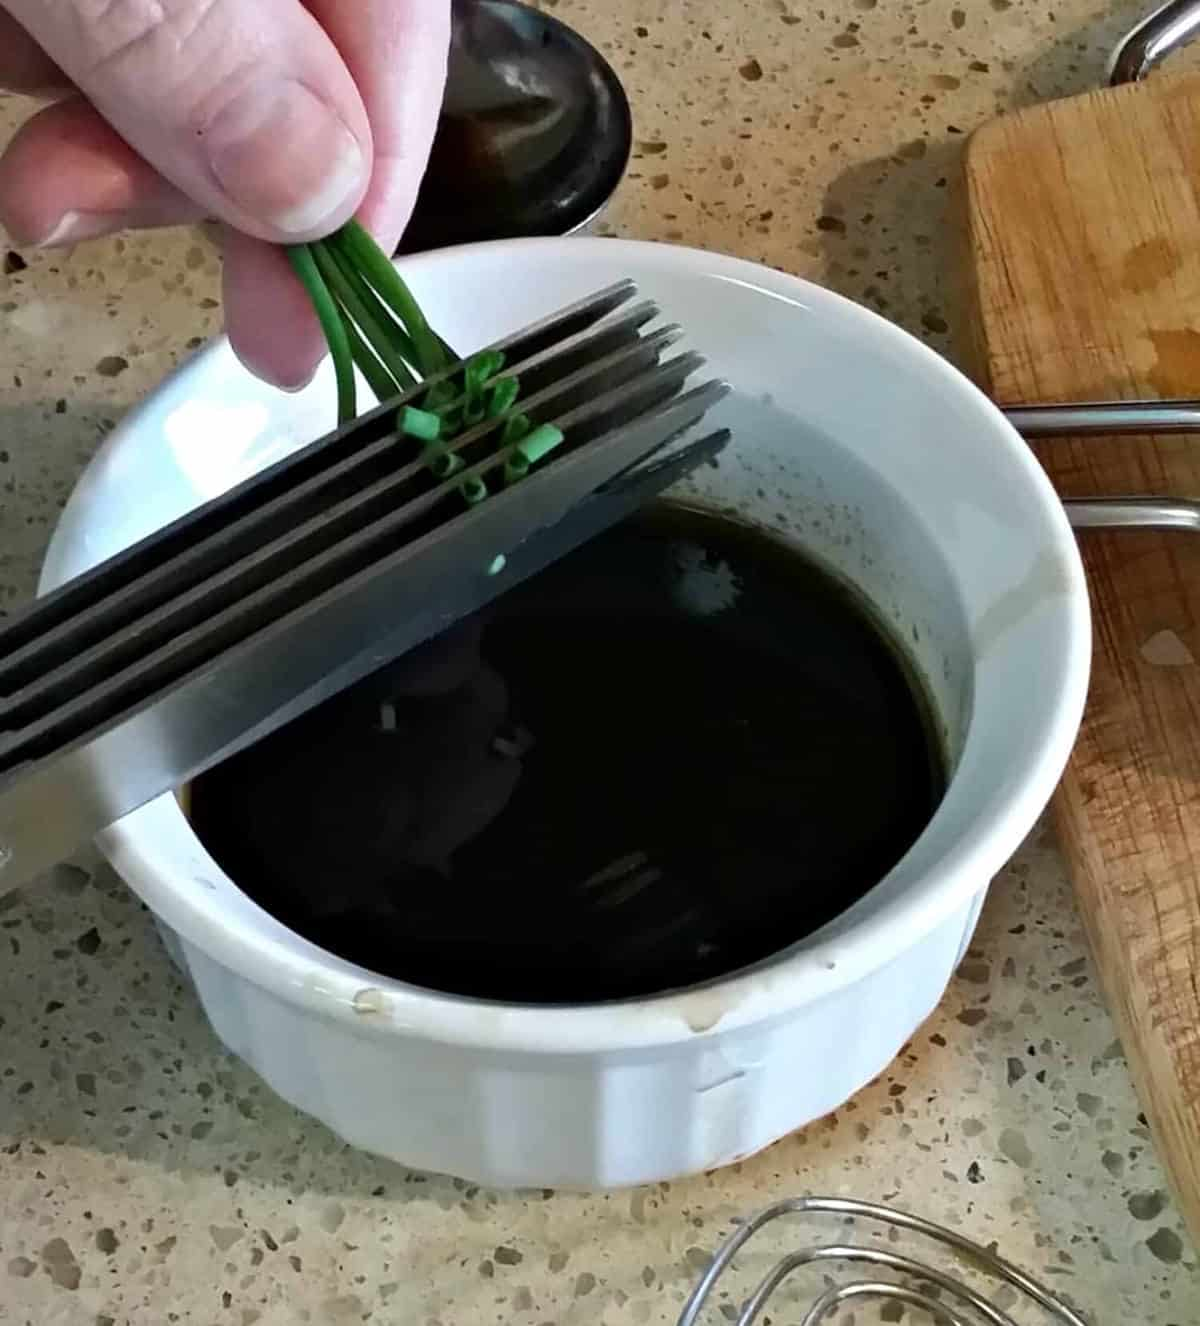 snipping chives with herb scissors for Balsamic vinaigrette